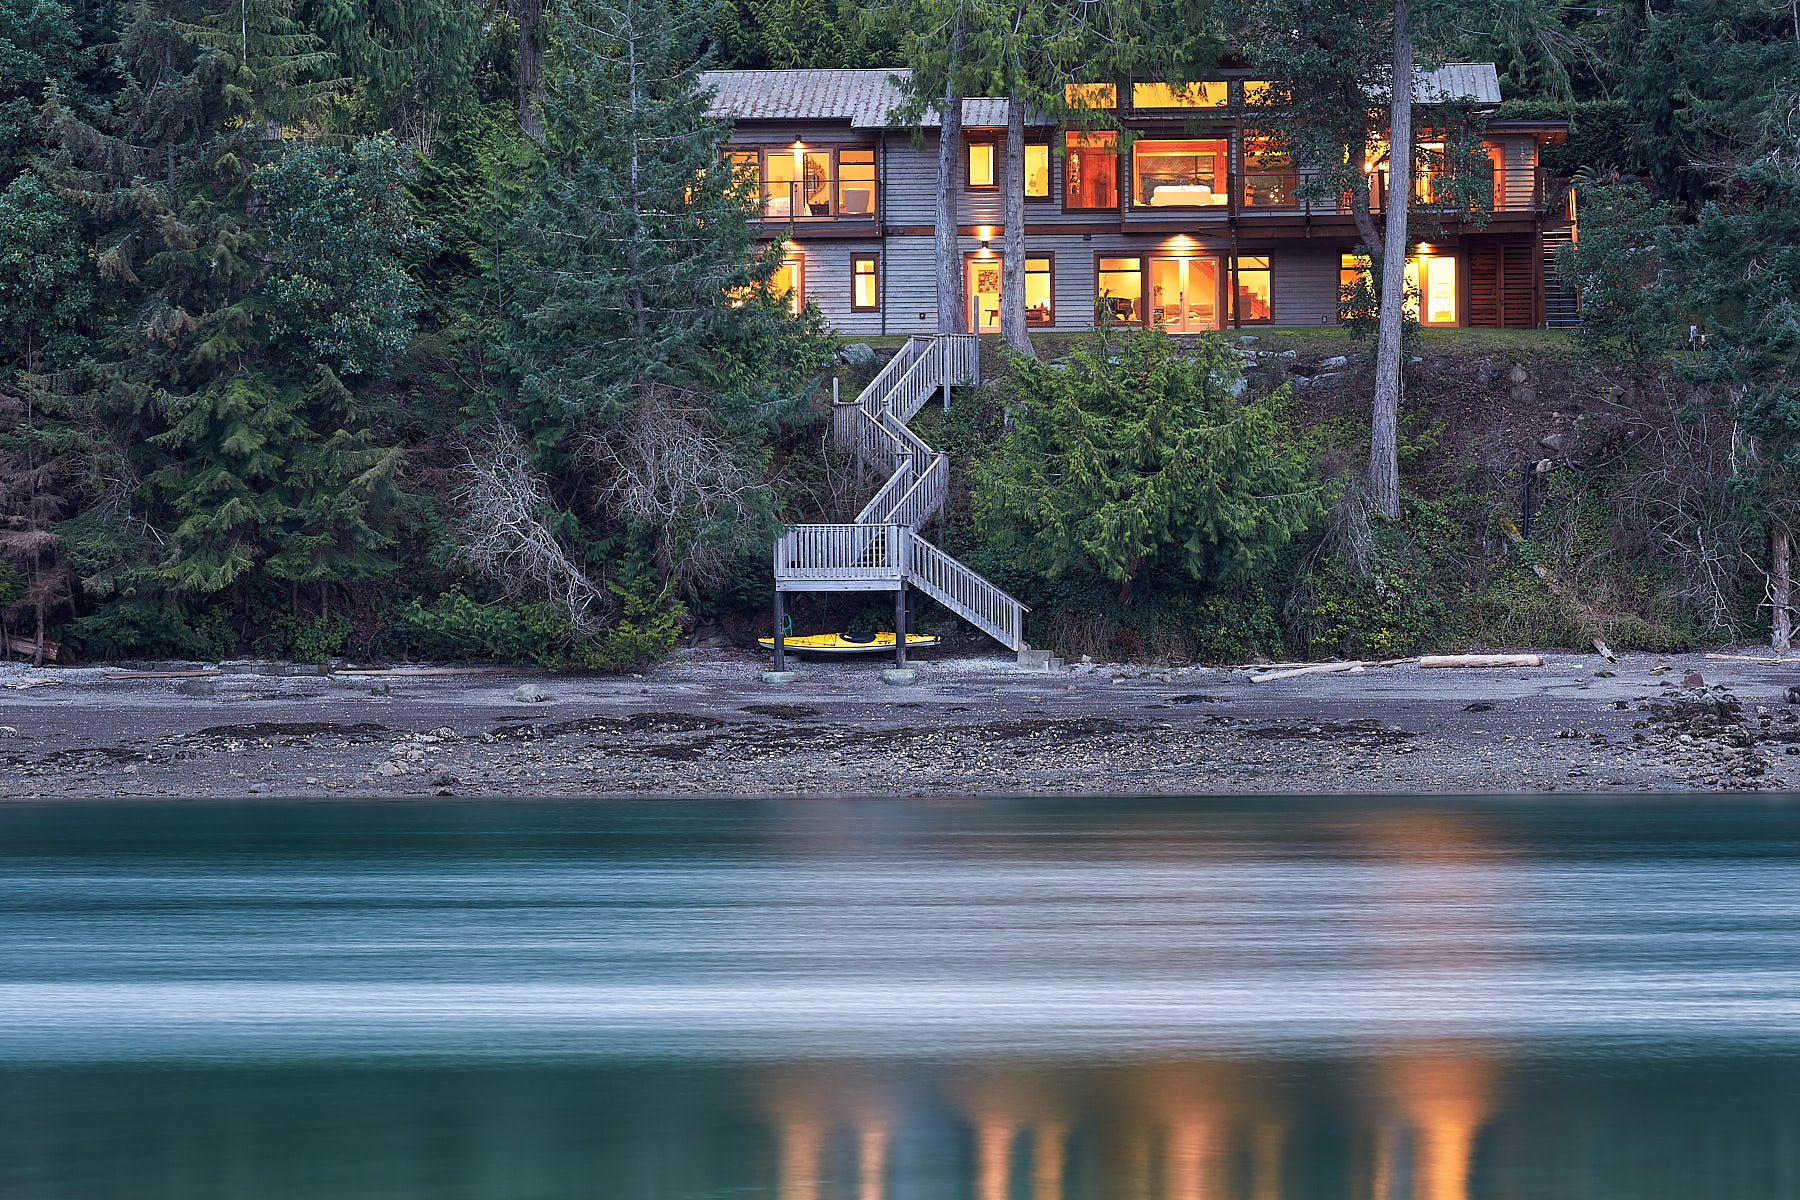 Oceanfront, Evening Exterior (real estate) ©johncameron.ca